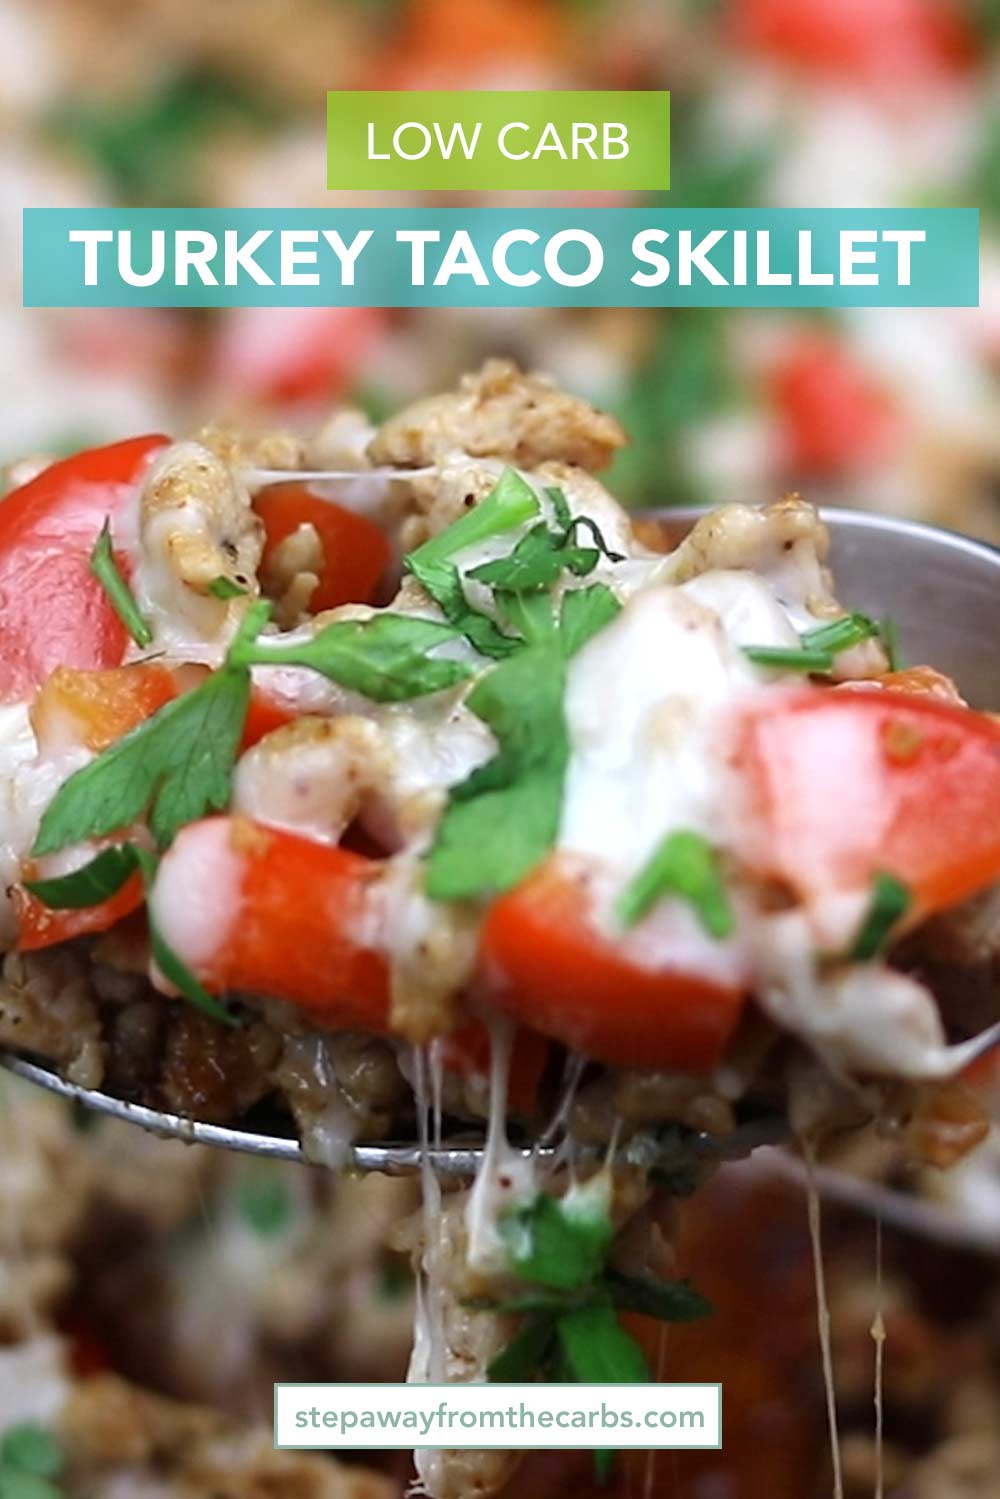 Low Carb Turkey Taco Skillet - an easy Mexican recipe with ground turkey and bell peppers